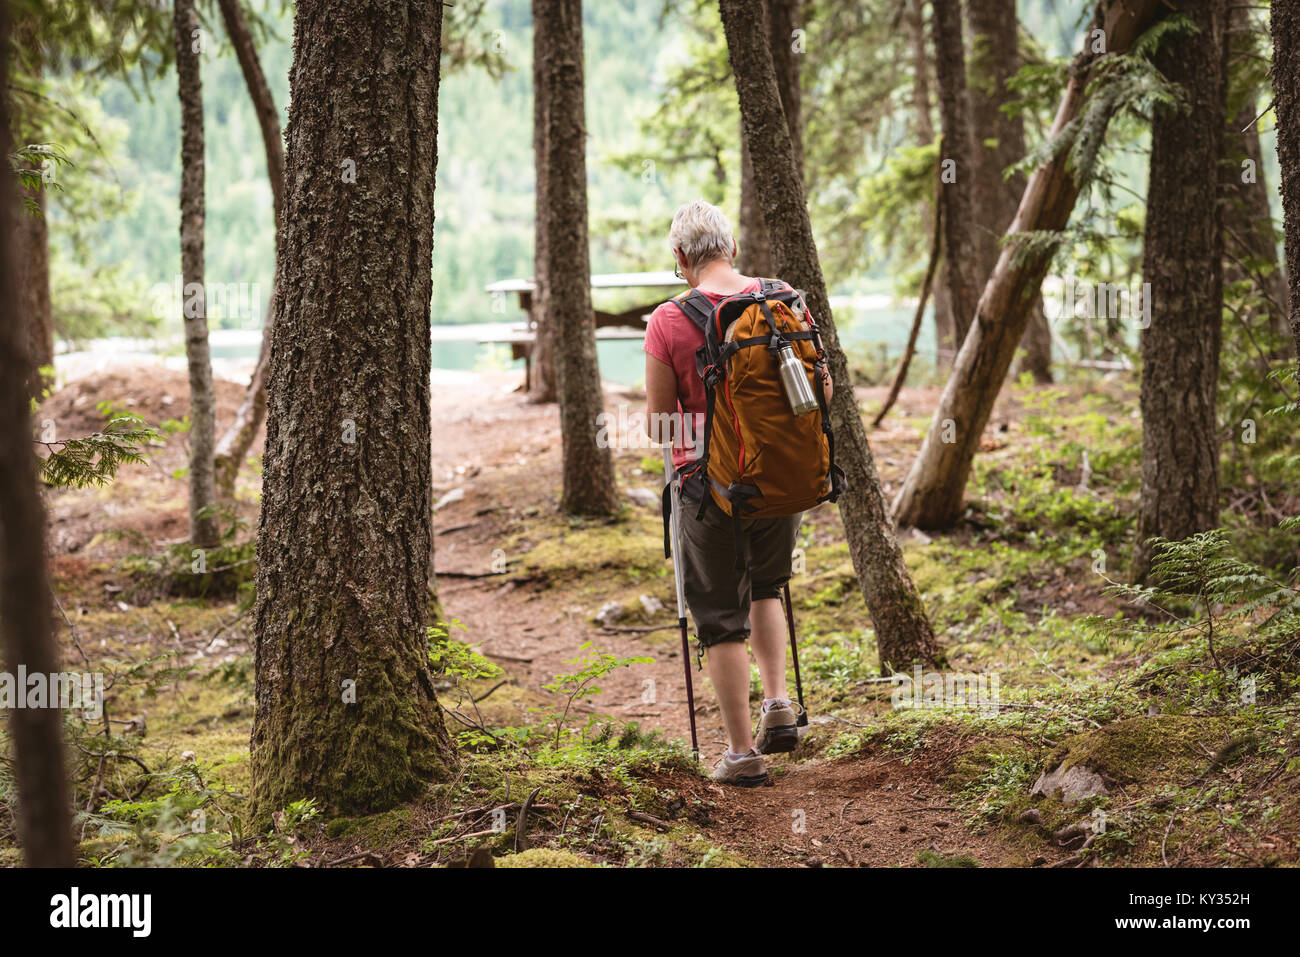 Mature woman hiking in forest - Stock Image